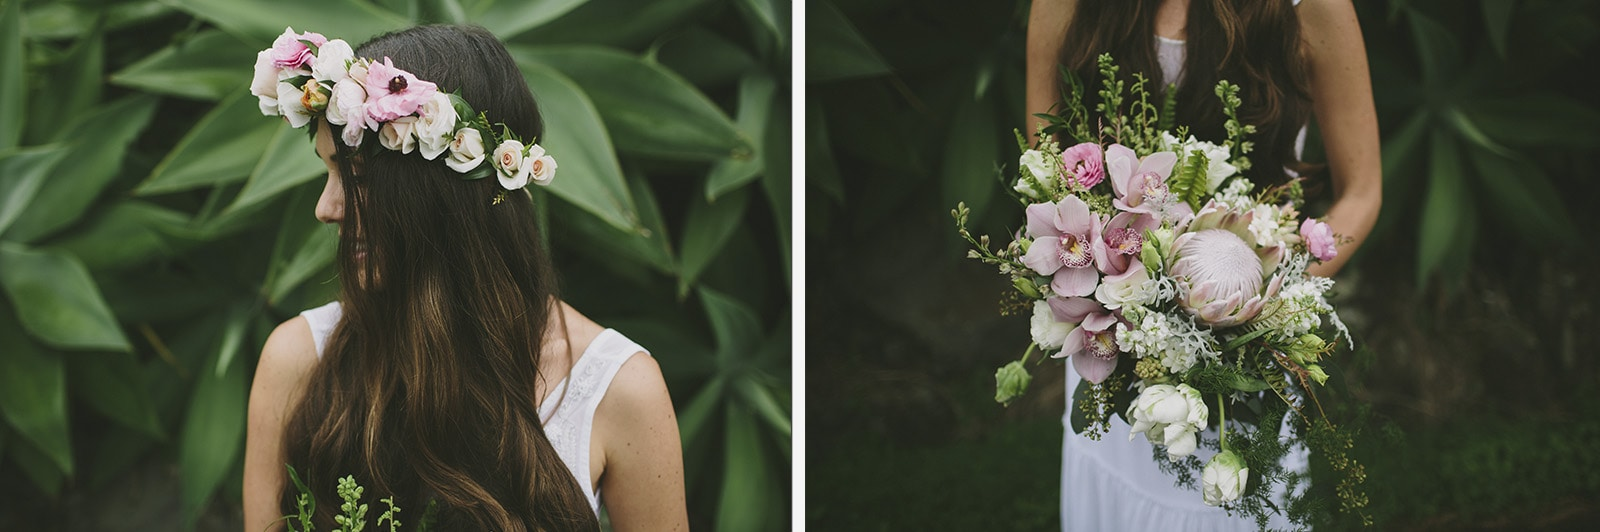 Maui_Wedding_Wailea_Kapalua_Hawaii_Photographer_028